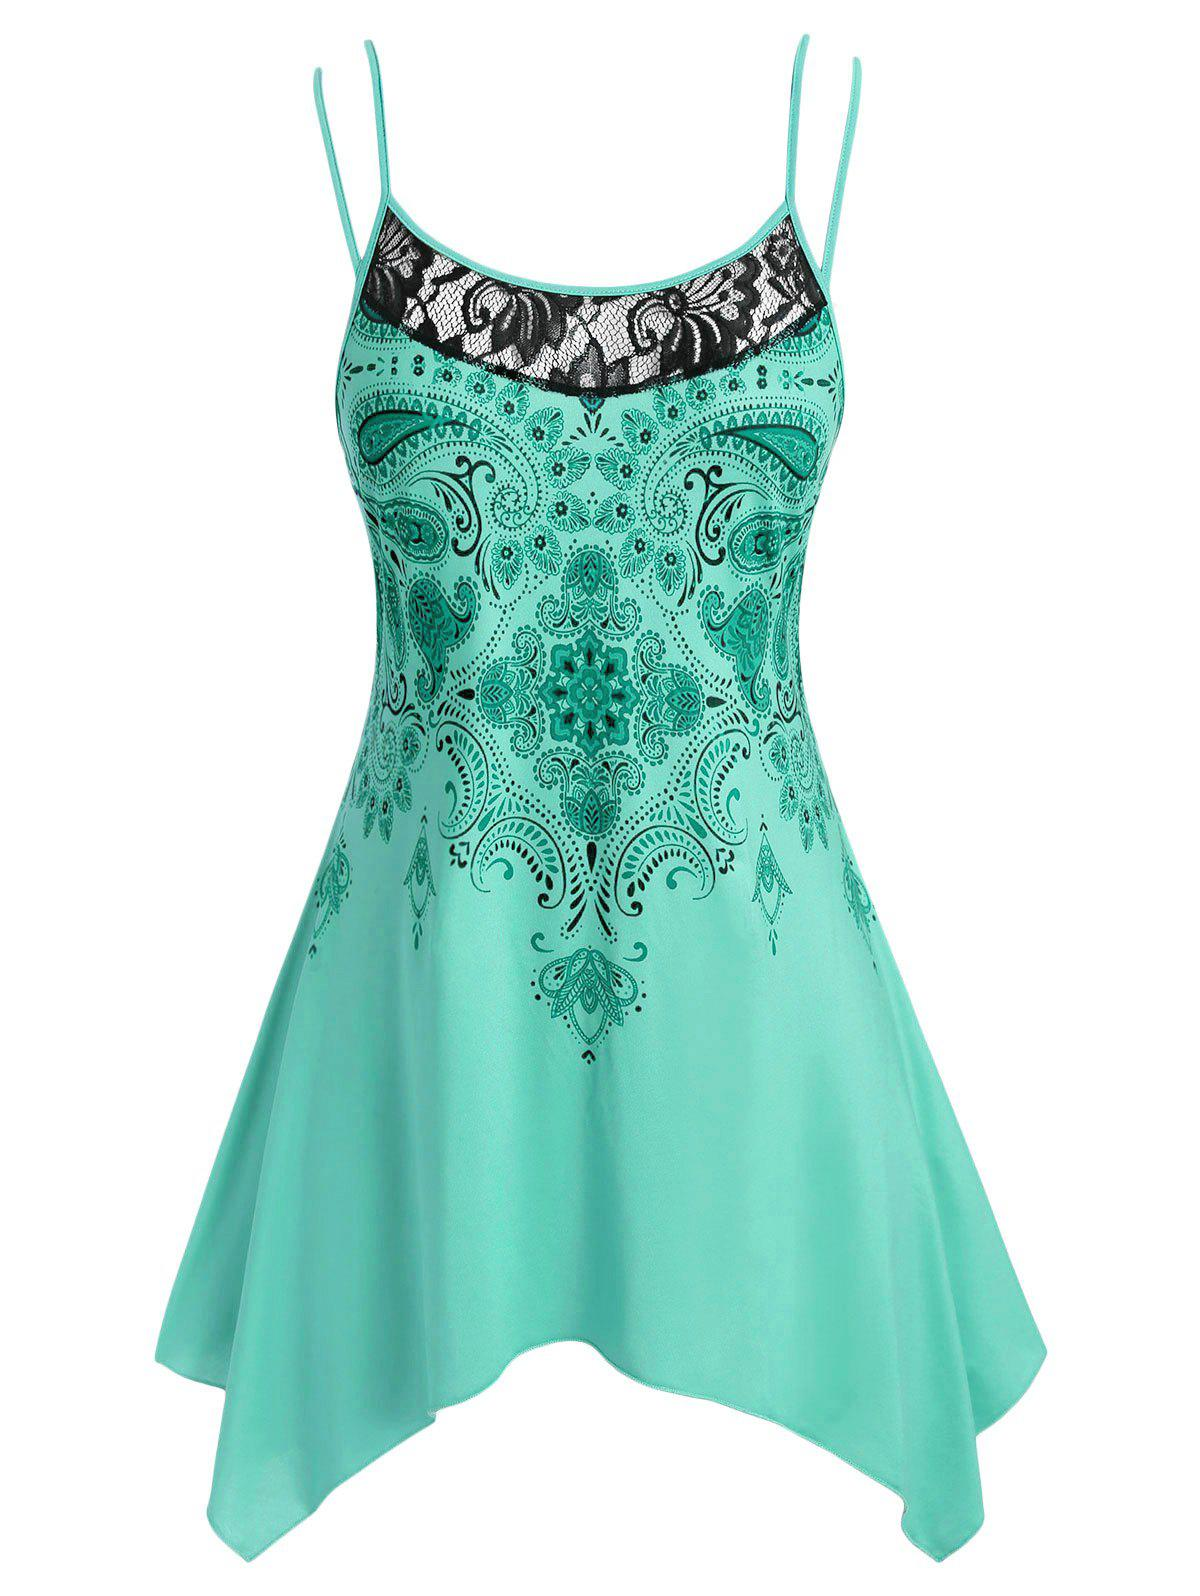 Paisley Print Lace Panel Handkerchief Plus Size Cami Top - MEDIUM TURQUOISE 3X